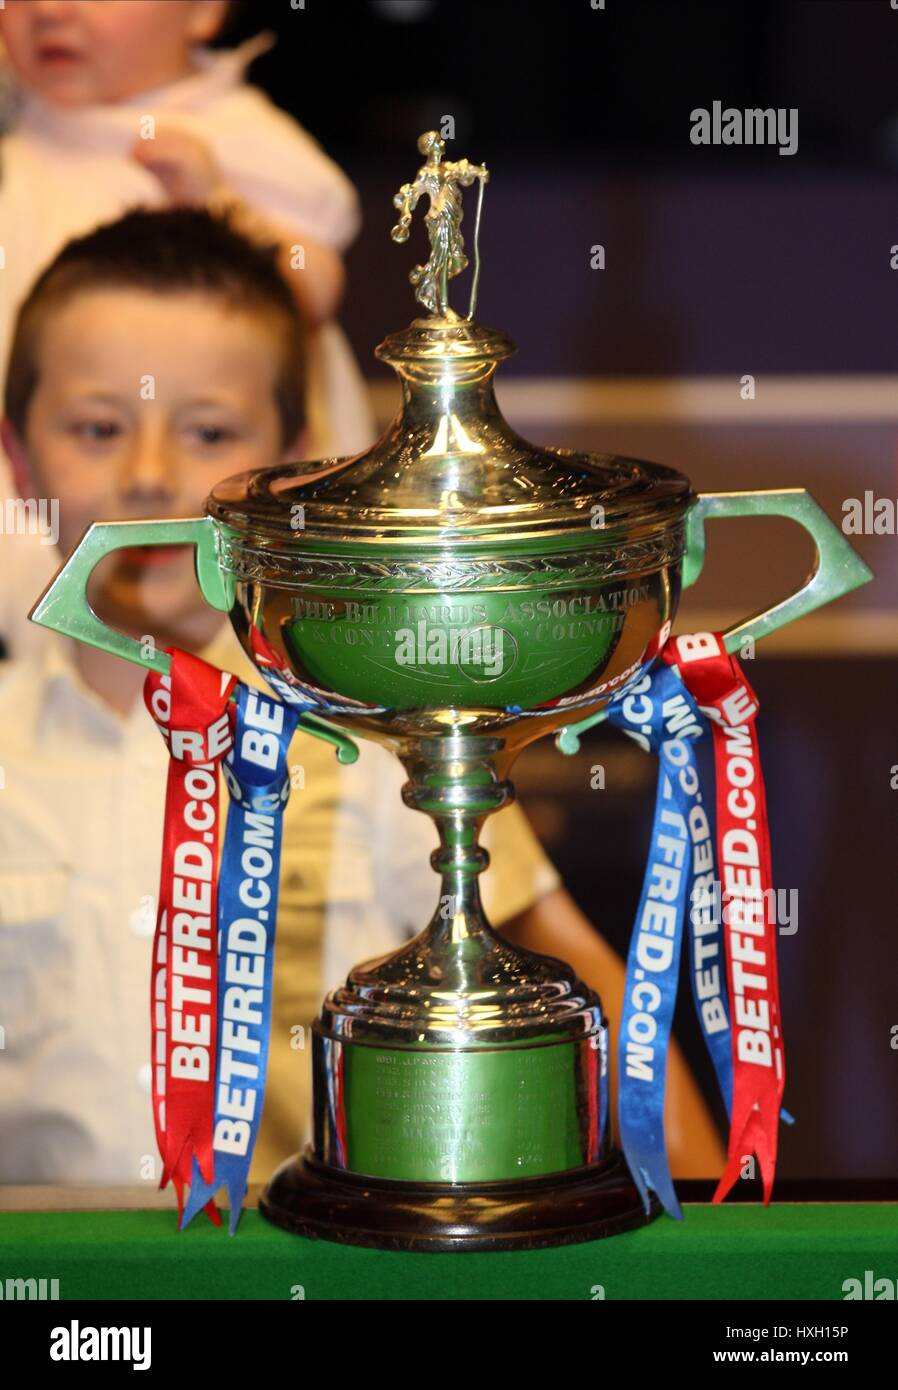 WORLD CHAMPIONSHIP TROPHY WORLD SNOOKER CHAMPIONSHIP THE CRUCIBLE SHEFFIELD ENGLAND 04 May 2009 - Stock Image